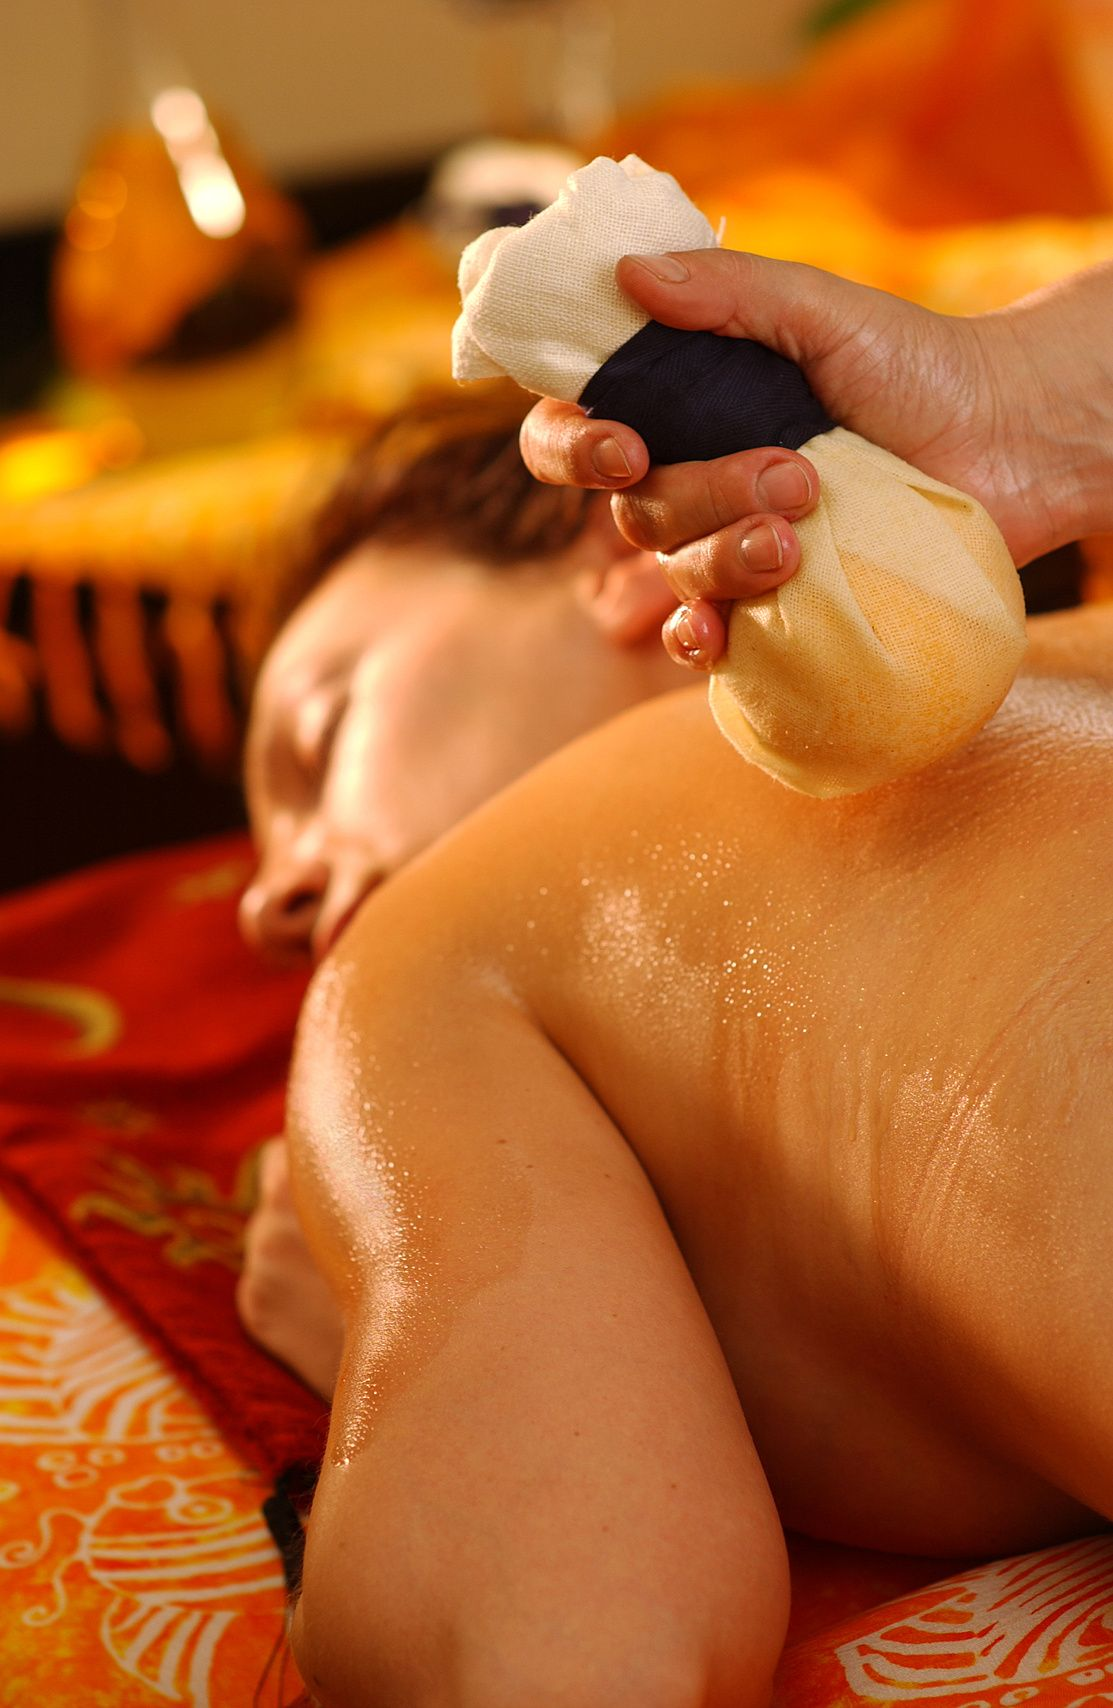 Pindasveda de-stress massage at Ayurveda Retreat in Reading; an incredibly  soothing Ayurvedic massage treatment to help with pain relief.